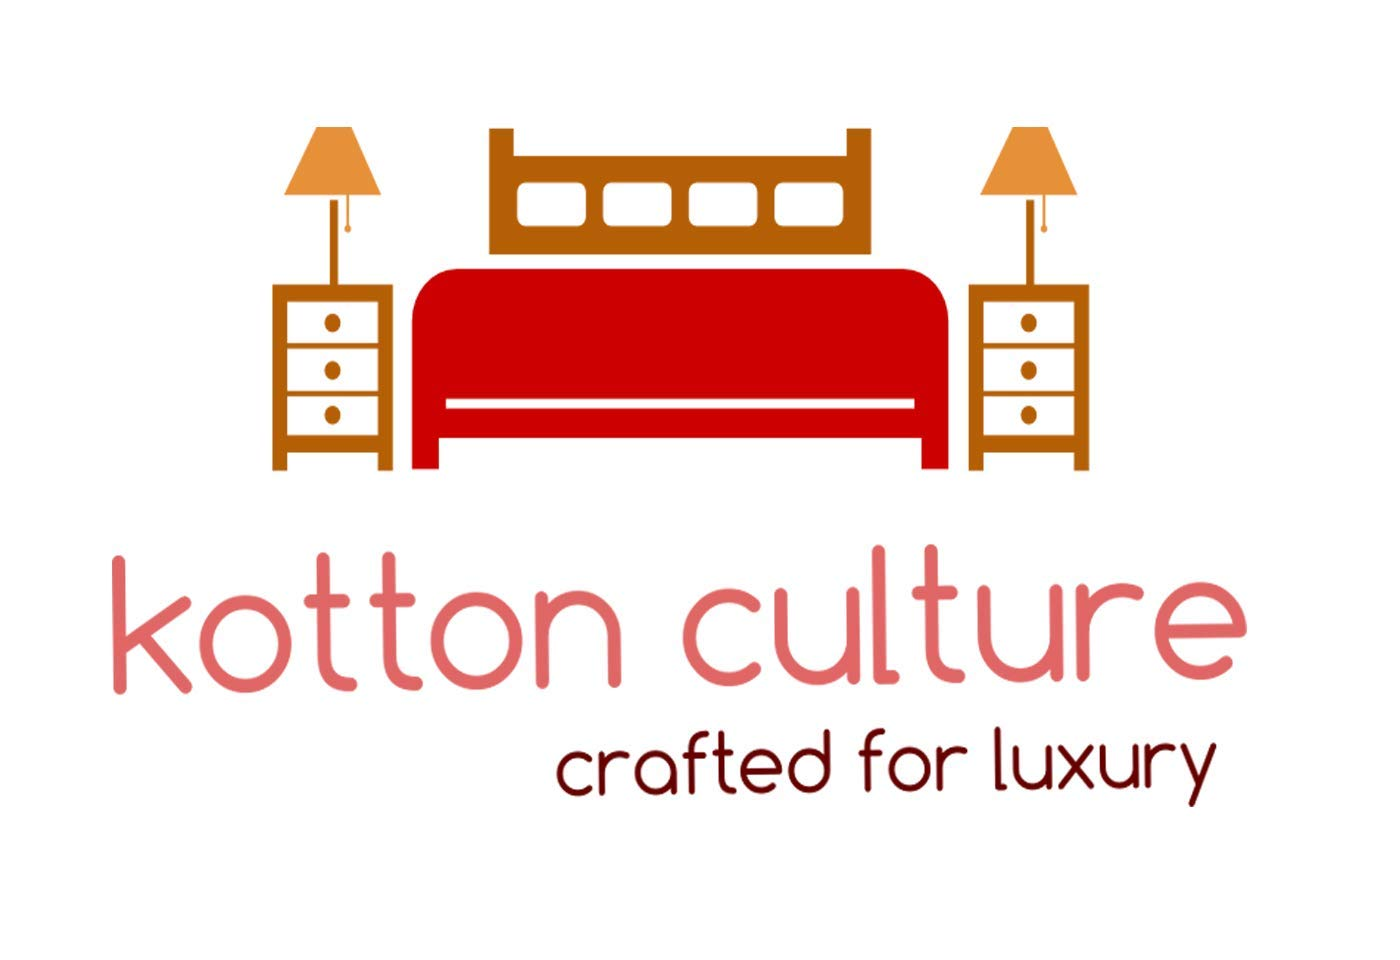 Kotton Culture Pinch Pleated Duvet Cover 100% Egyptian Cotton 600 Thread Count with Zipper & Coner Ties Tuffed Pattern Pintuck Decorative (California King/King, Silver) by Kotton Culture (Image #8)